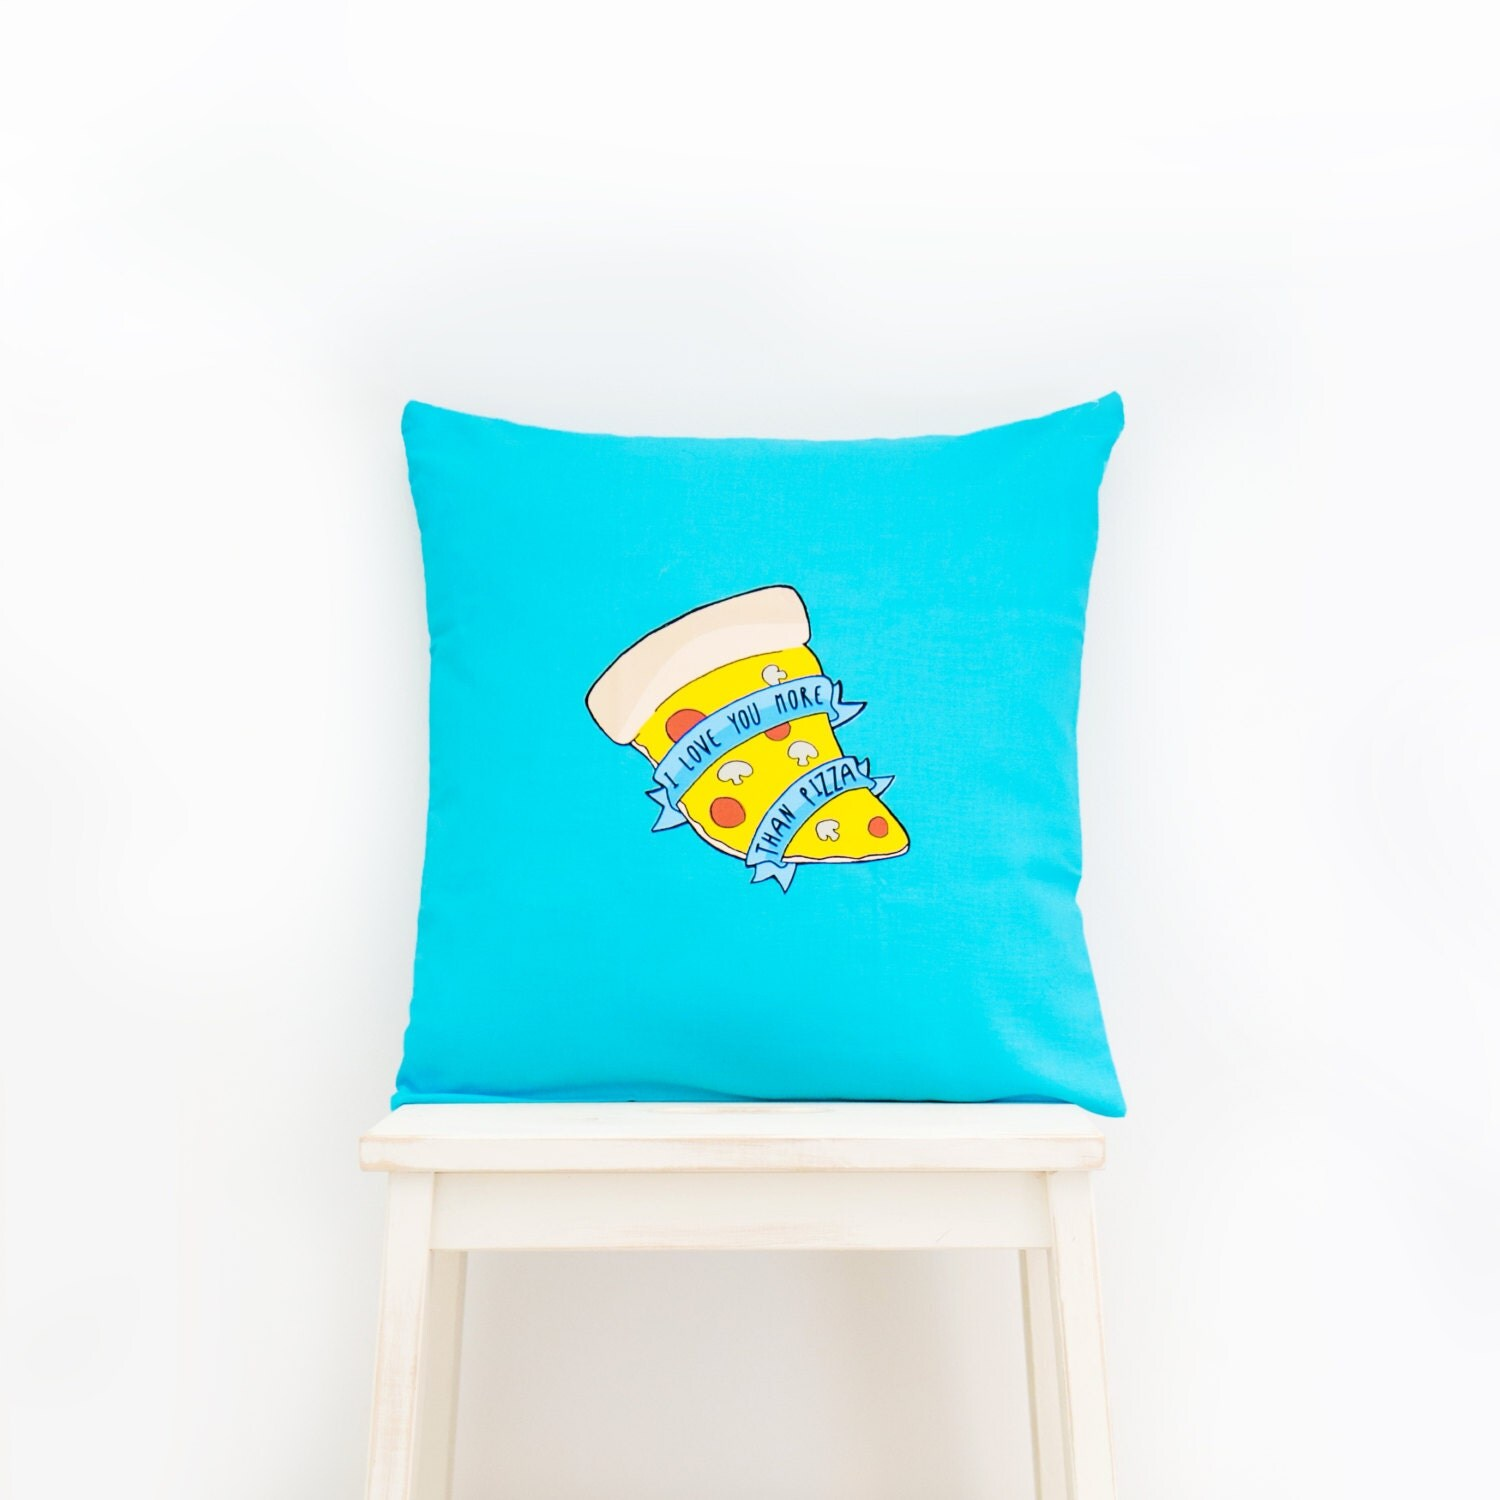 Love You More Than Pizza  Kawaii Food Cushion home decor for childrens bedroom nursery or cosy accessories for the home. Blue